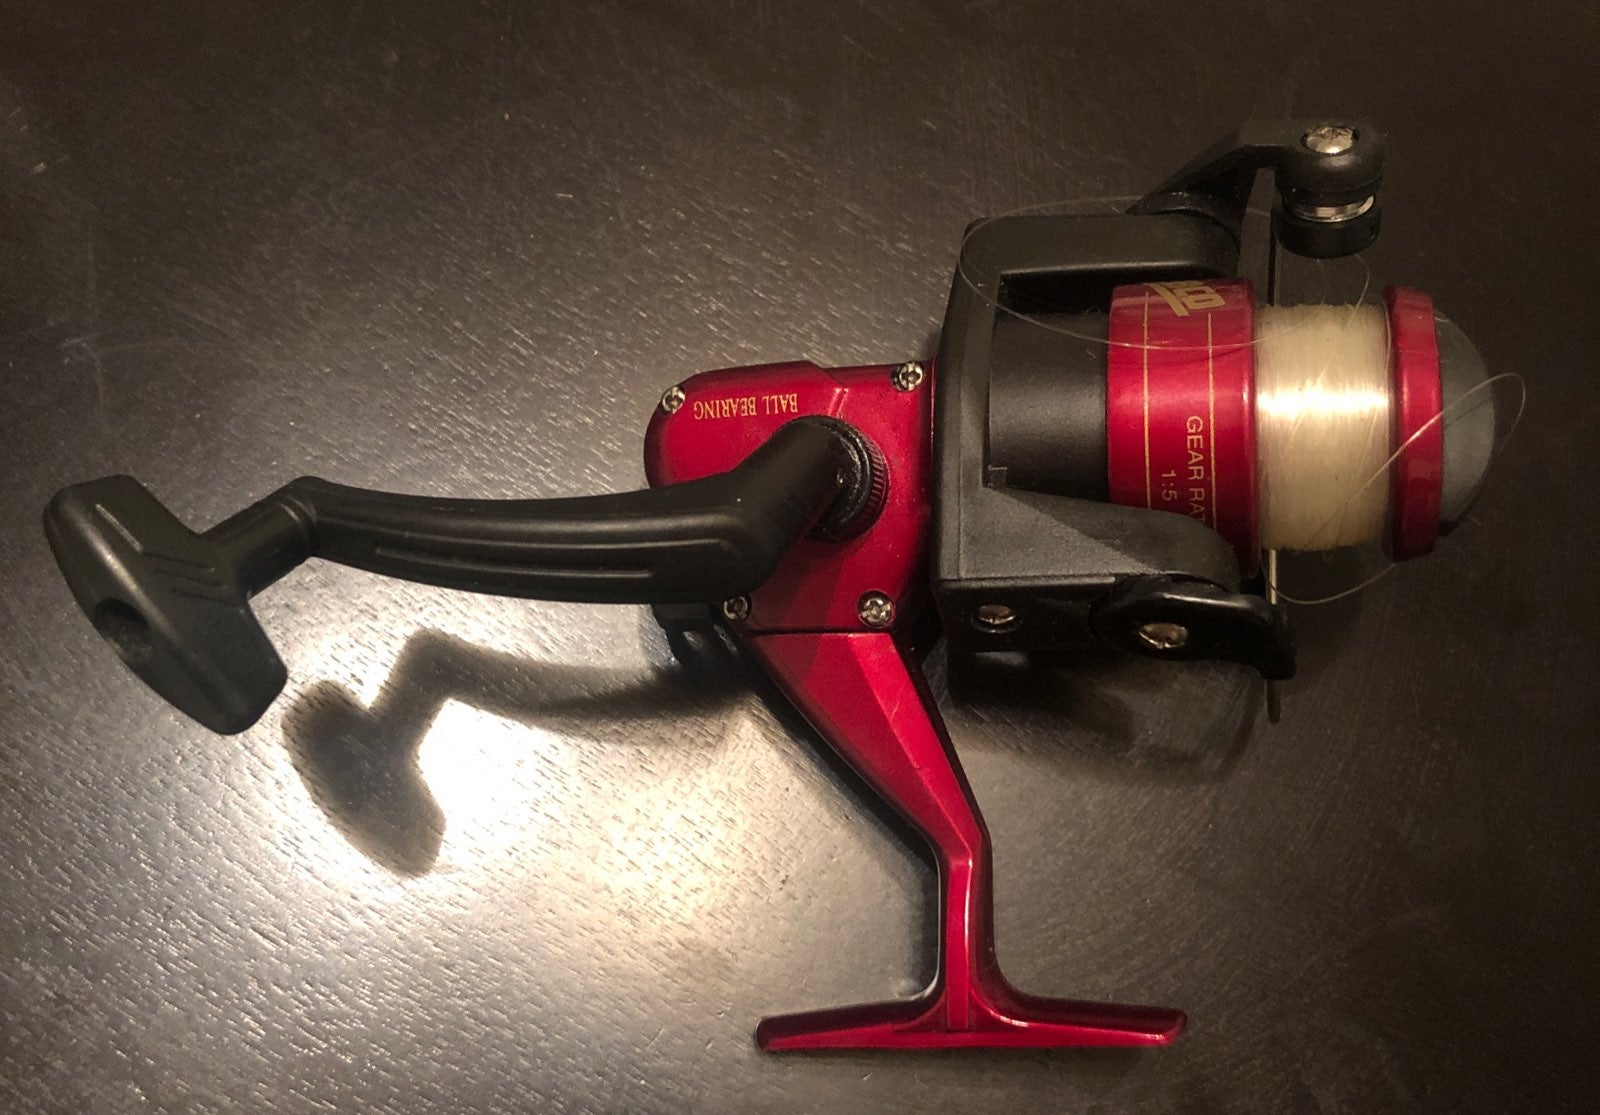 Fishing reel zebco red gear ratio 1:5